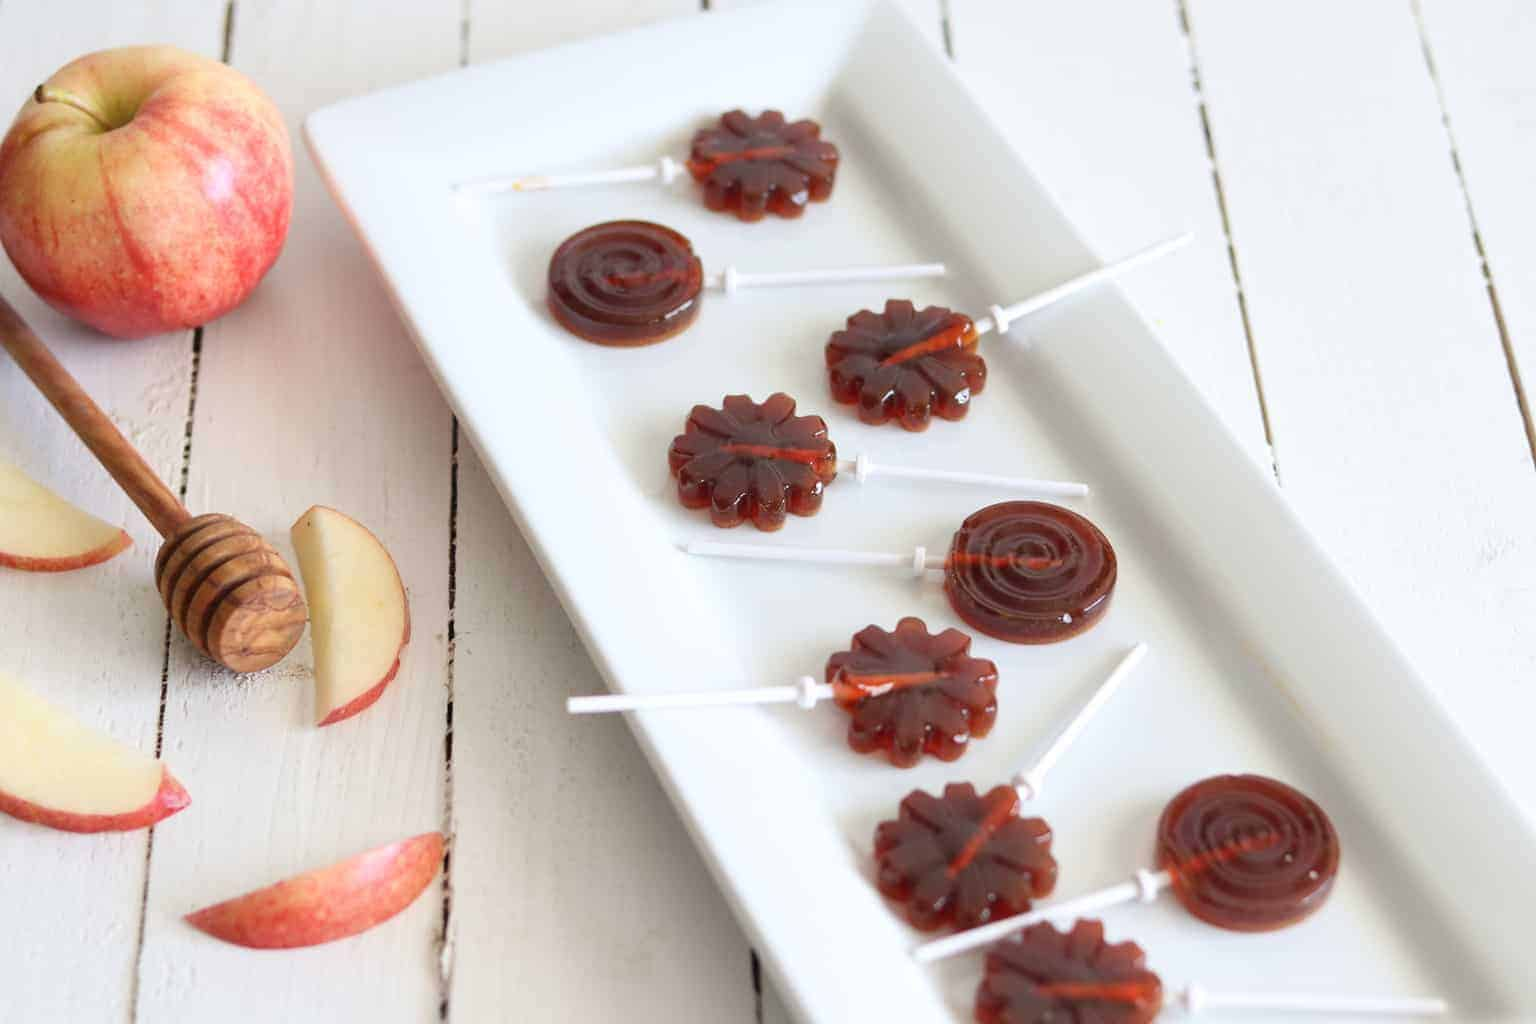 These honey apple flavored suckers are made with all natural ingredients, making them a perfect healthy treat for Easter time.